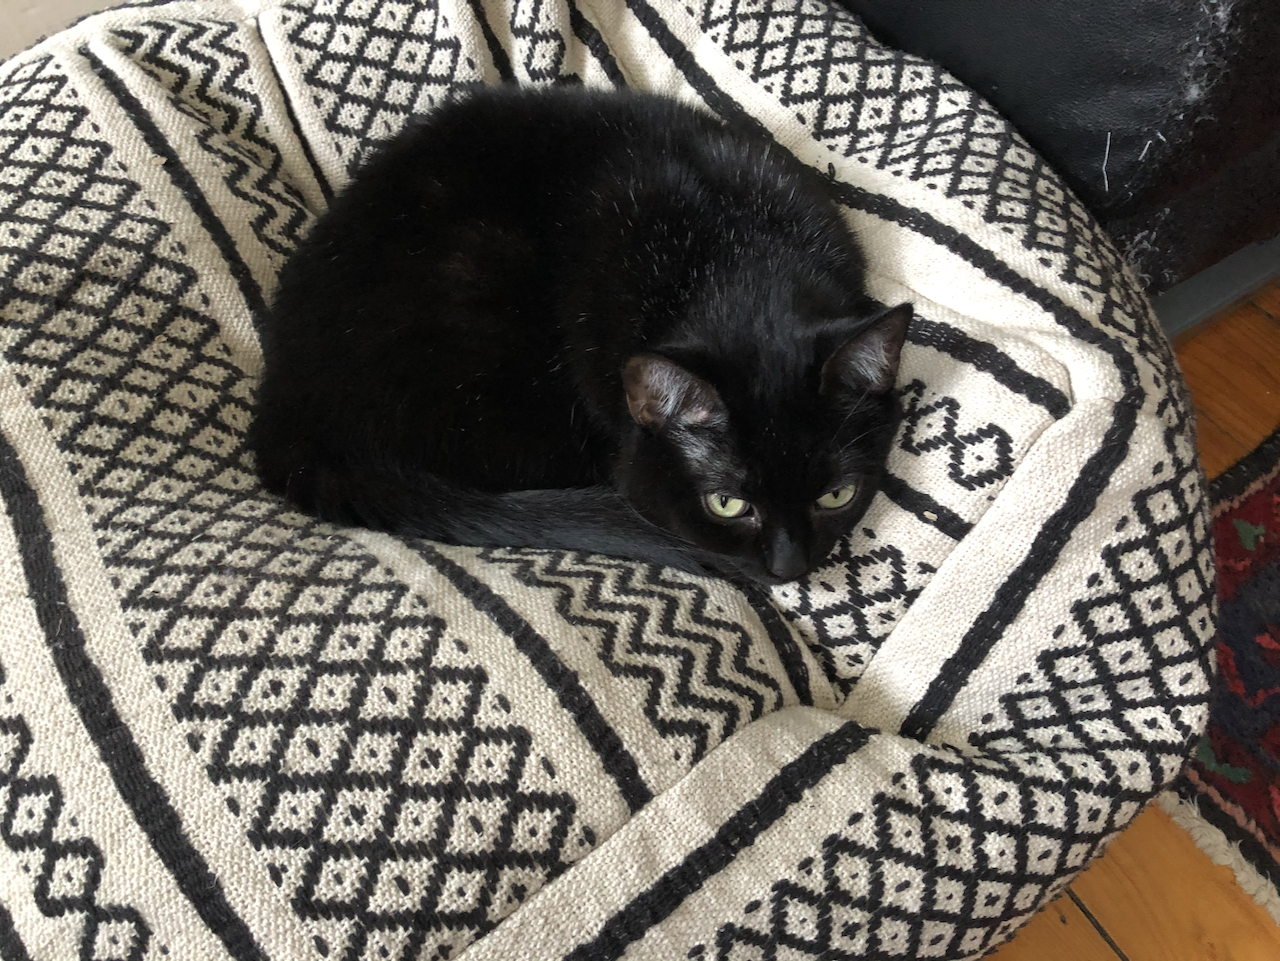 Here is a photo of my cat Luna on her poof-throne.